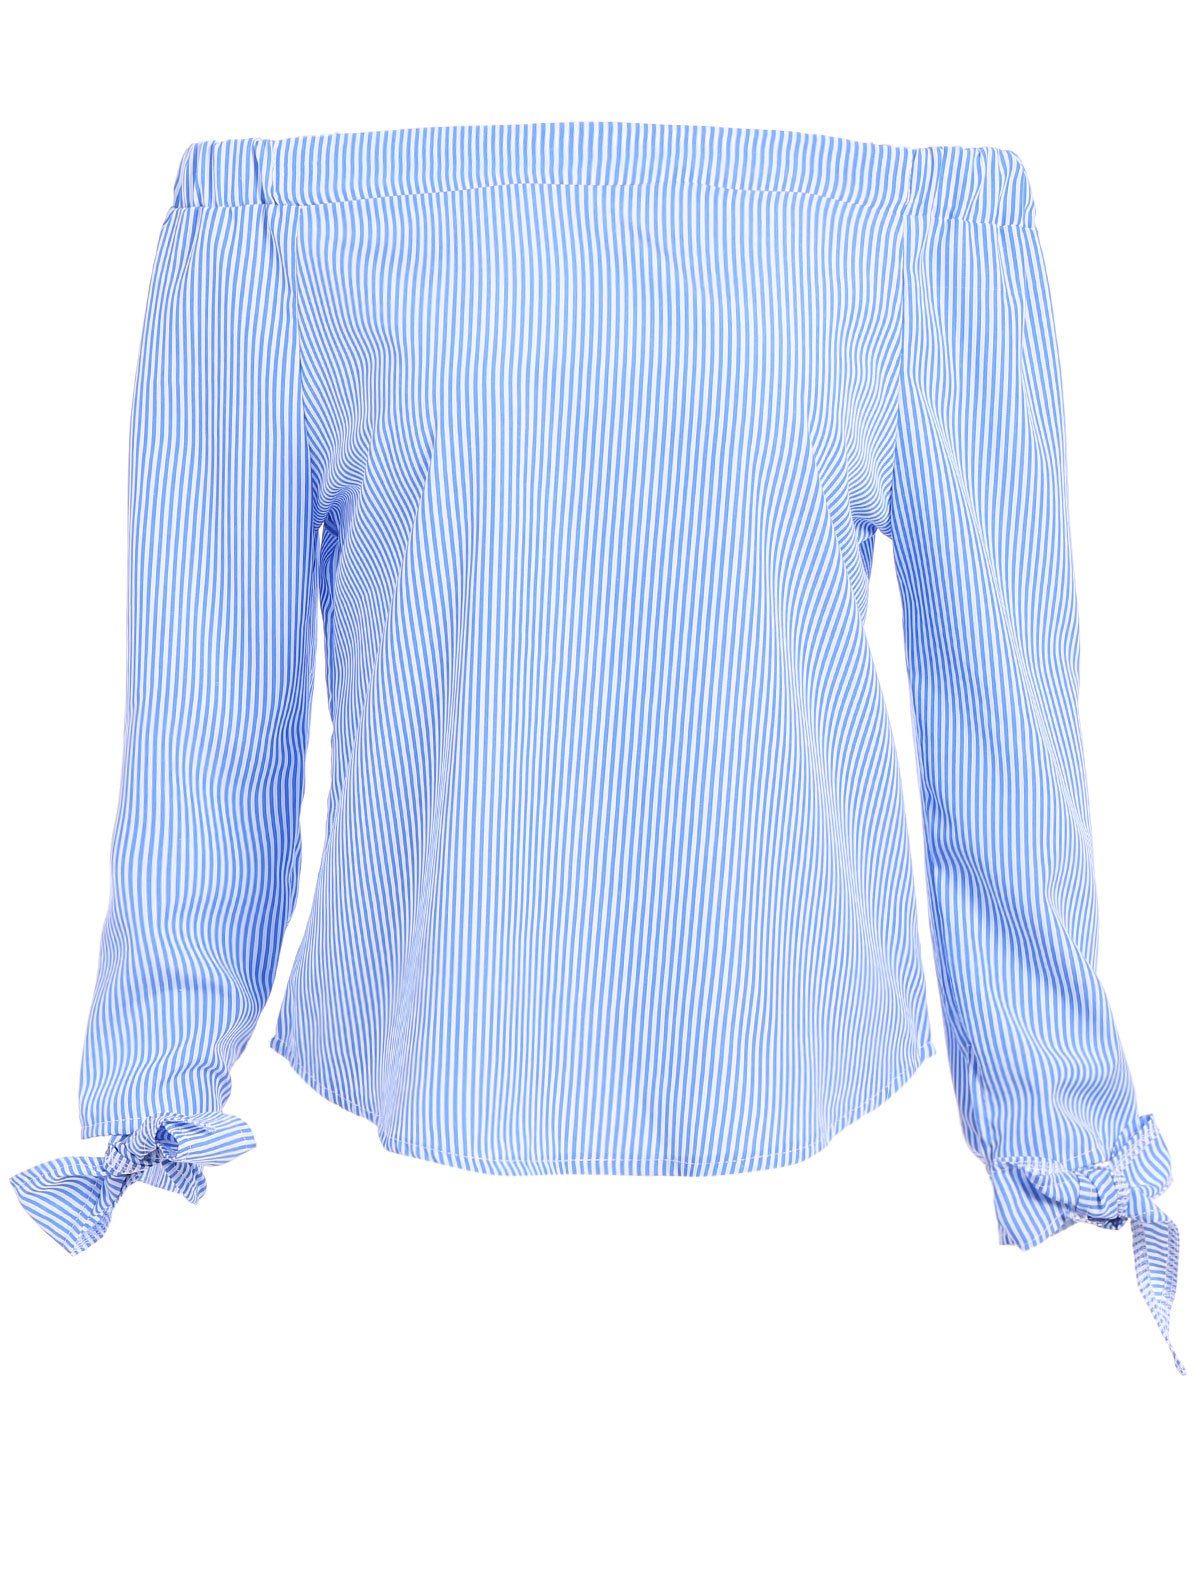 Tie Sleeve Off The Shoulder Top - BLUE/WHITE L